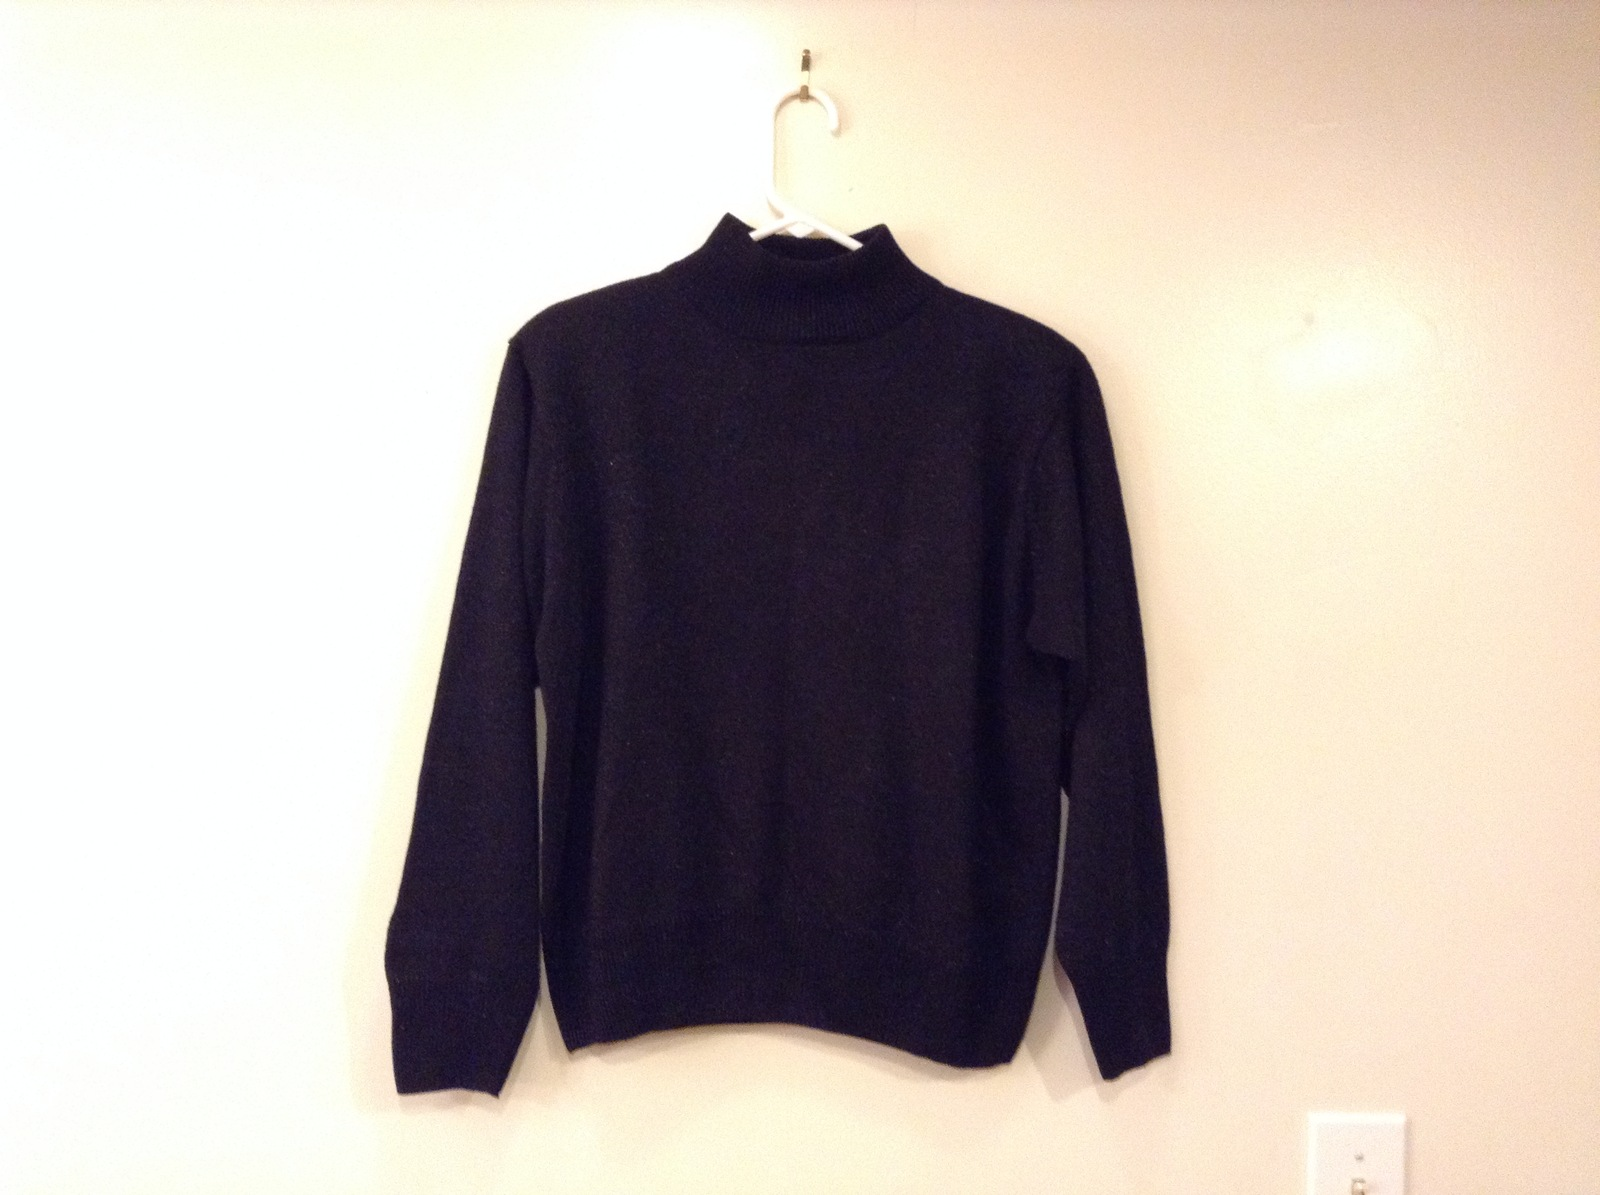 Dress Barn Black Acrylic Mock Turtleneck Sweater with Metallic Thread, size L